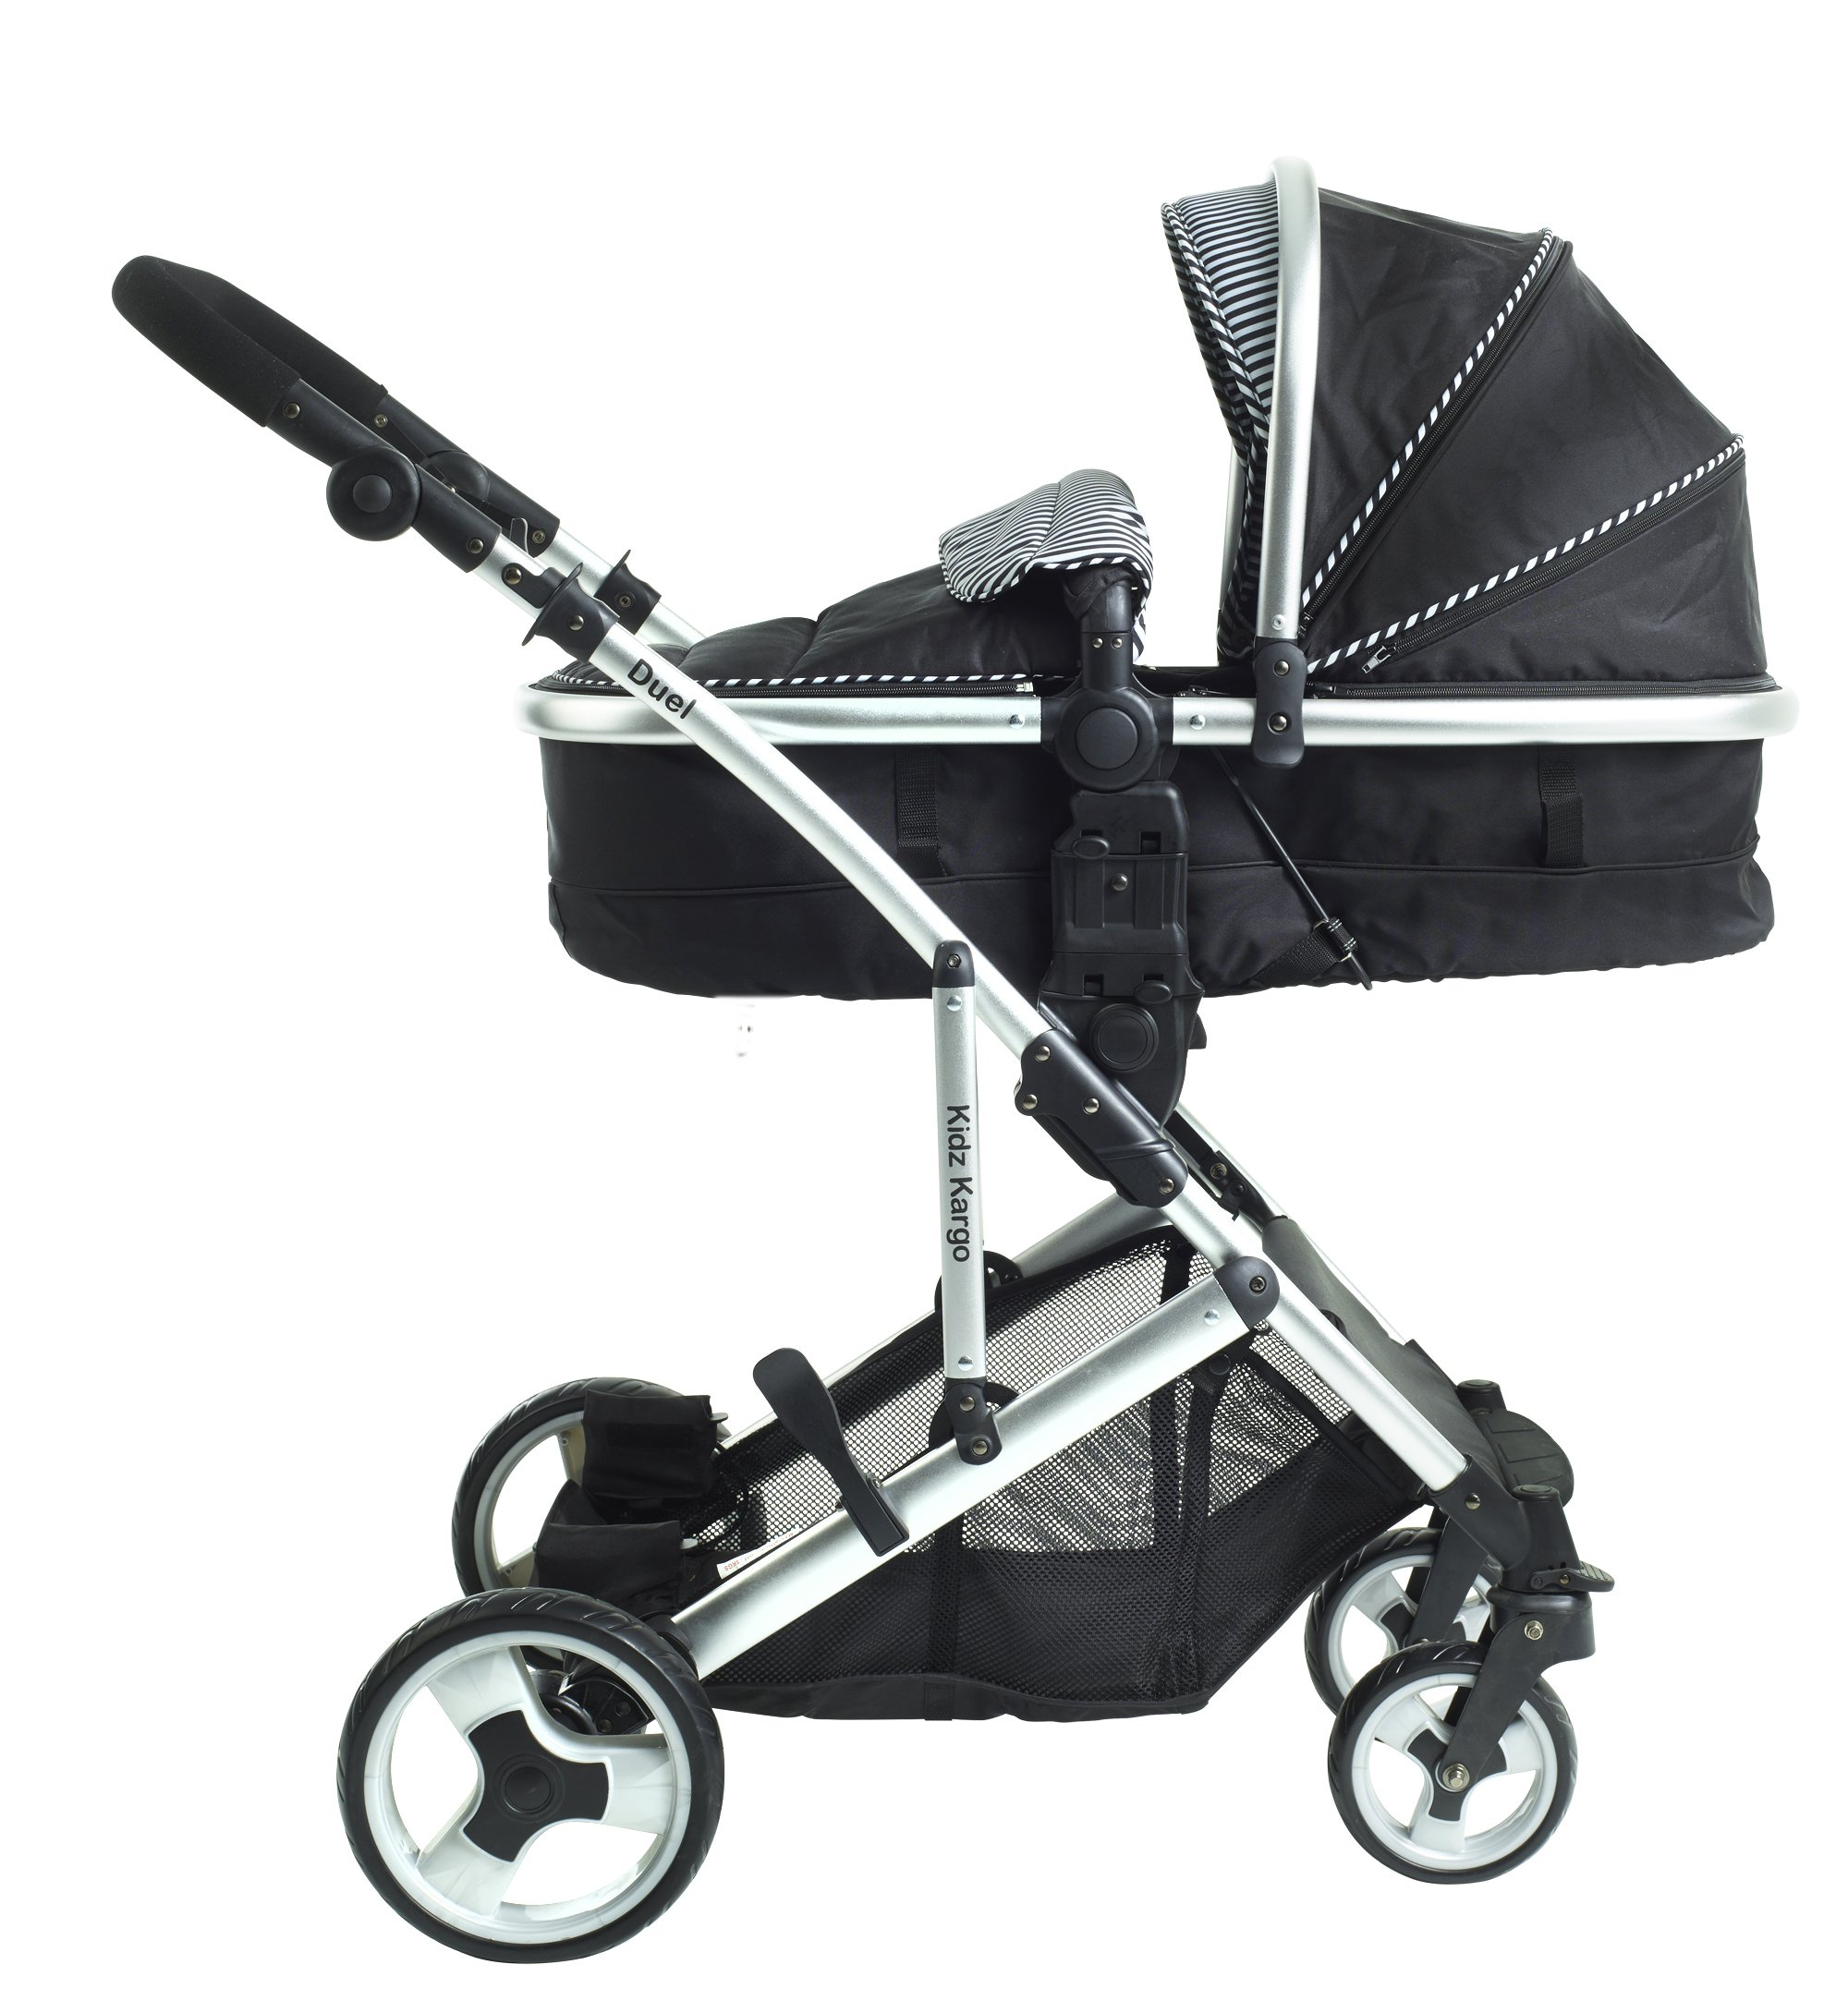 Duel combo Double pushchair with carrycot pram includes 2 FREE footmuffs Newborn & toddler, tandem travel system buggy convertible carrycot to seat unit and toddler/child seat unit, Midnight Black by Kids Kargo Kids Kargo The carrycot when converted to seat unit, can be rear or forward facing. Versatile. Suitable for Newborn and toddler: Carrycot with mattress and soft lining, which zip off. Remove lining and lid, when baby grows out of carrycot mode. Converts to a full sized seat unit, with 5 point harness. Bucket seat unit for toddler or baby over 6 months sits in forward facing bottom position , or forward and rear facing at the top, if car seat used at the bottom. 3